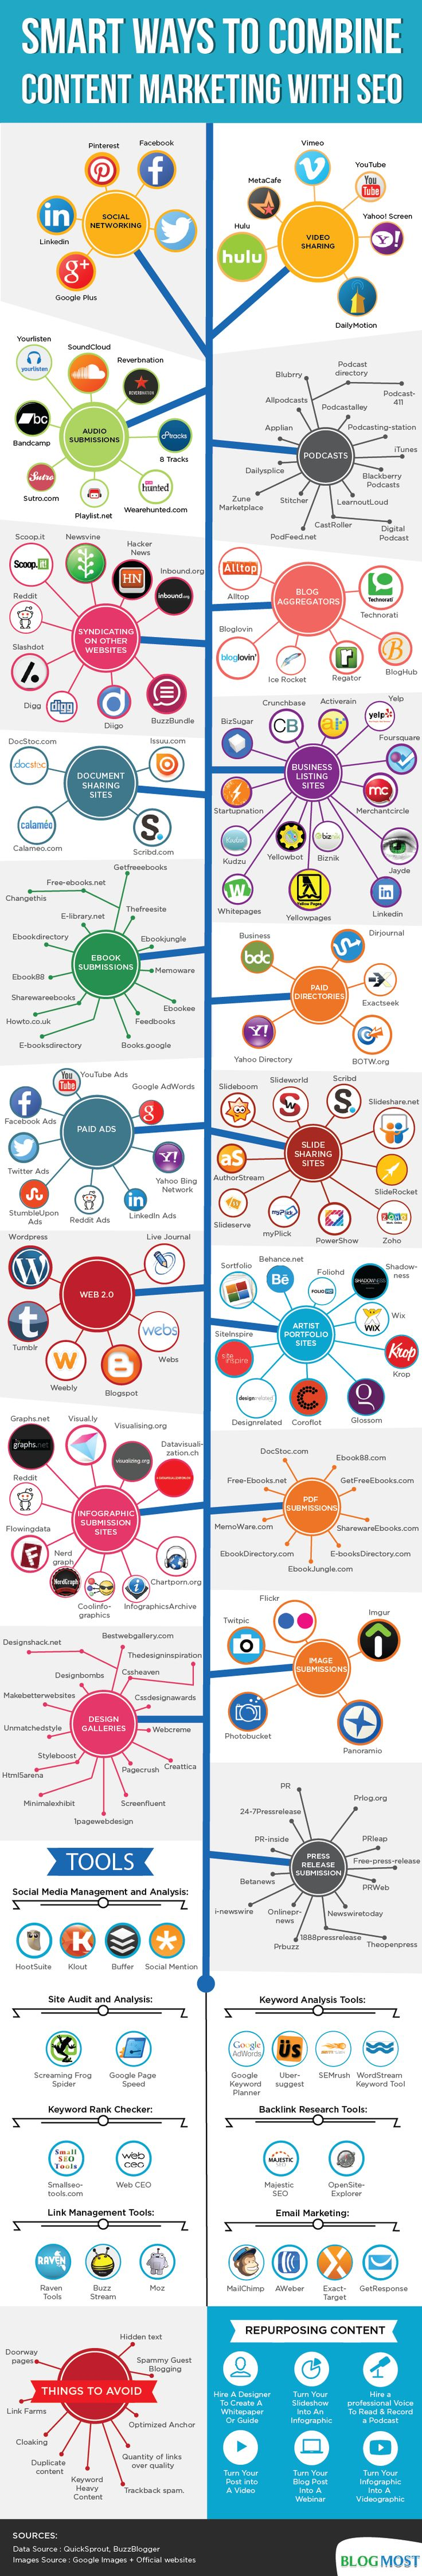 smart ways to combine #contentmarketing with #SEO in 2014 - #infographic #backlinks